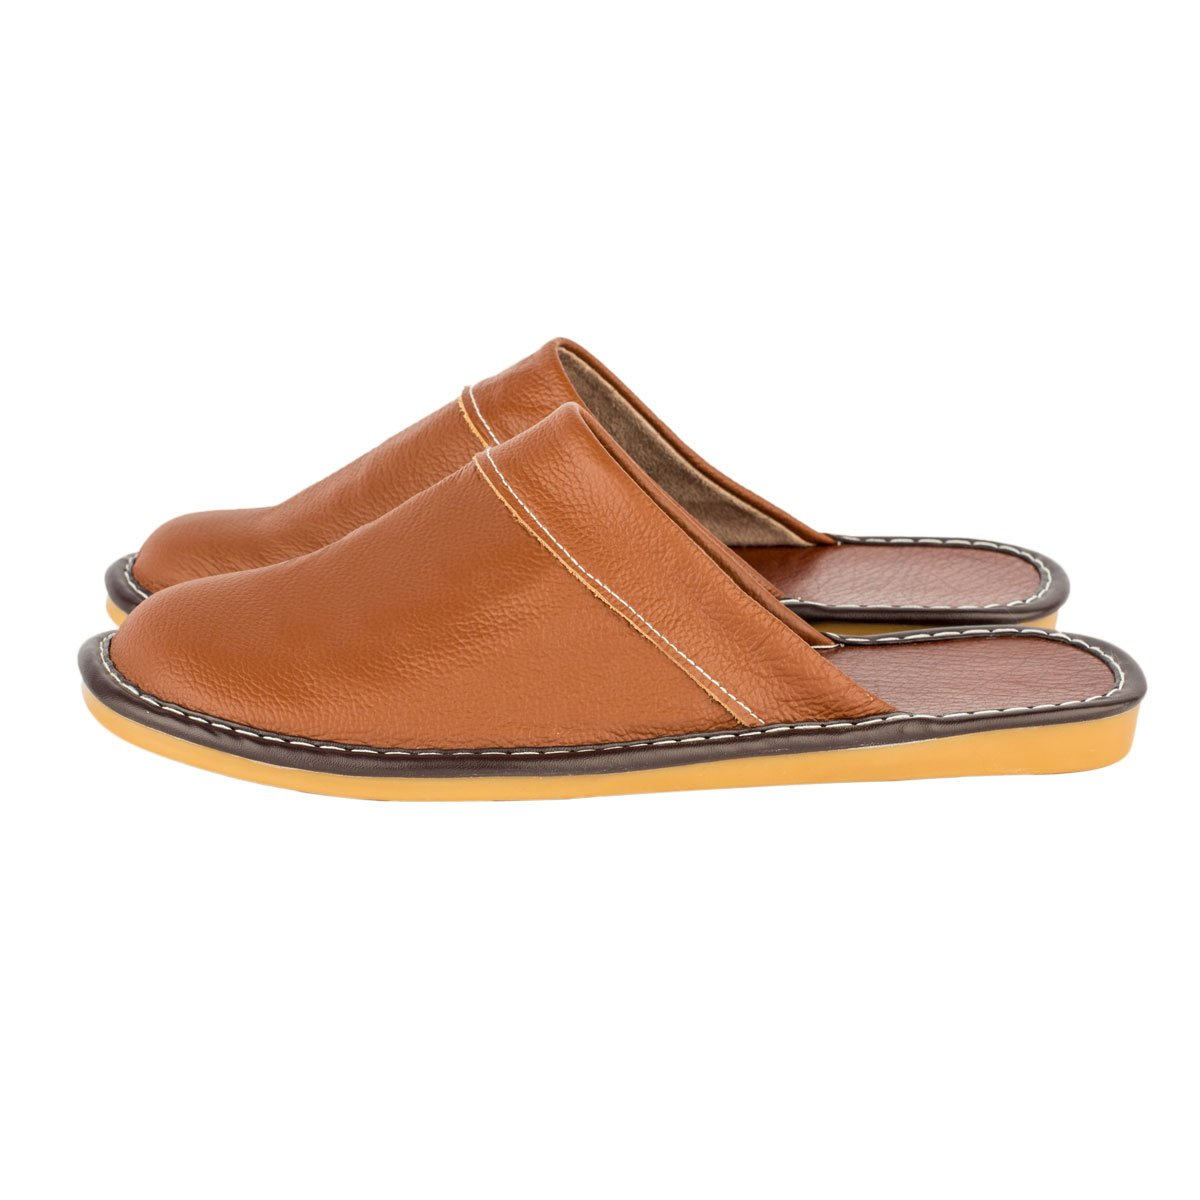 Haisum Mens Summer Indoor Leather Slippers Luxury Novelty Closed Toe Slip On House Sandals